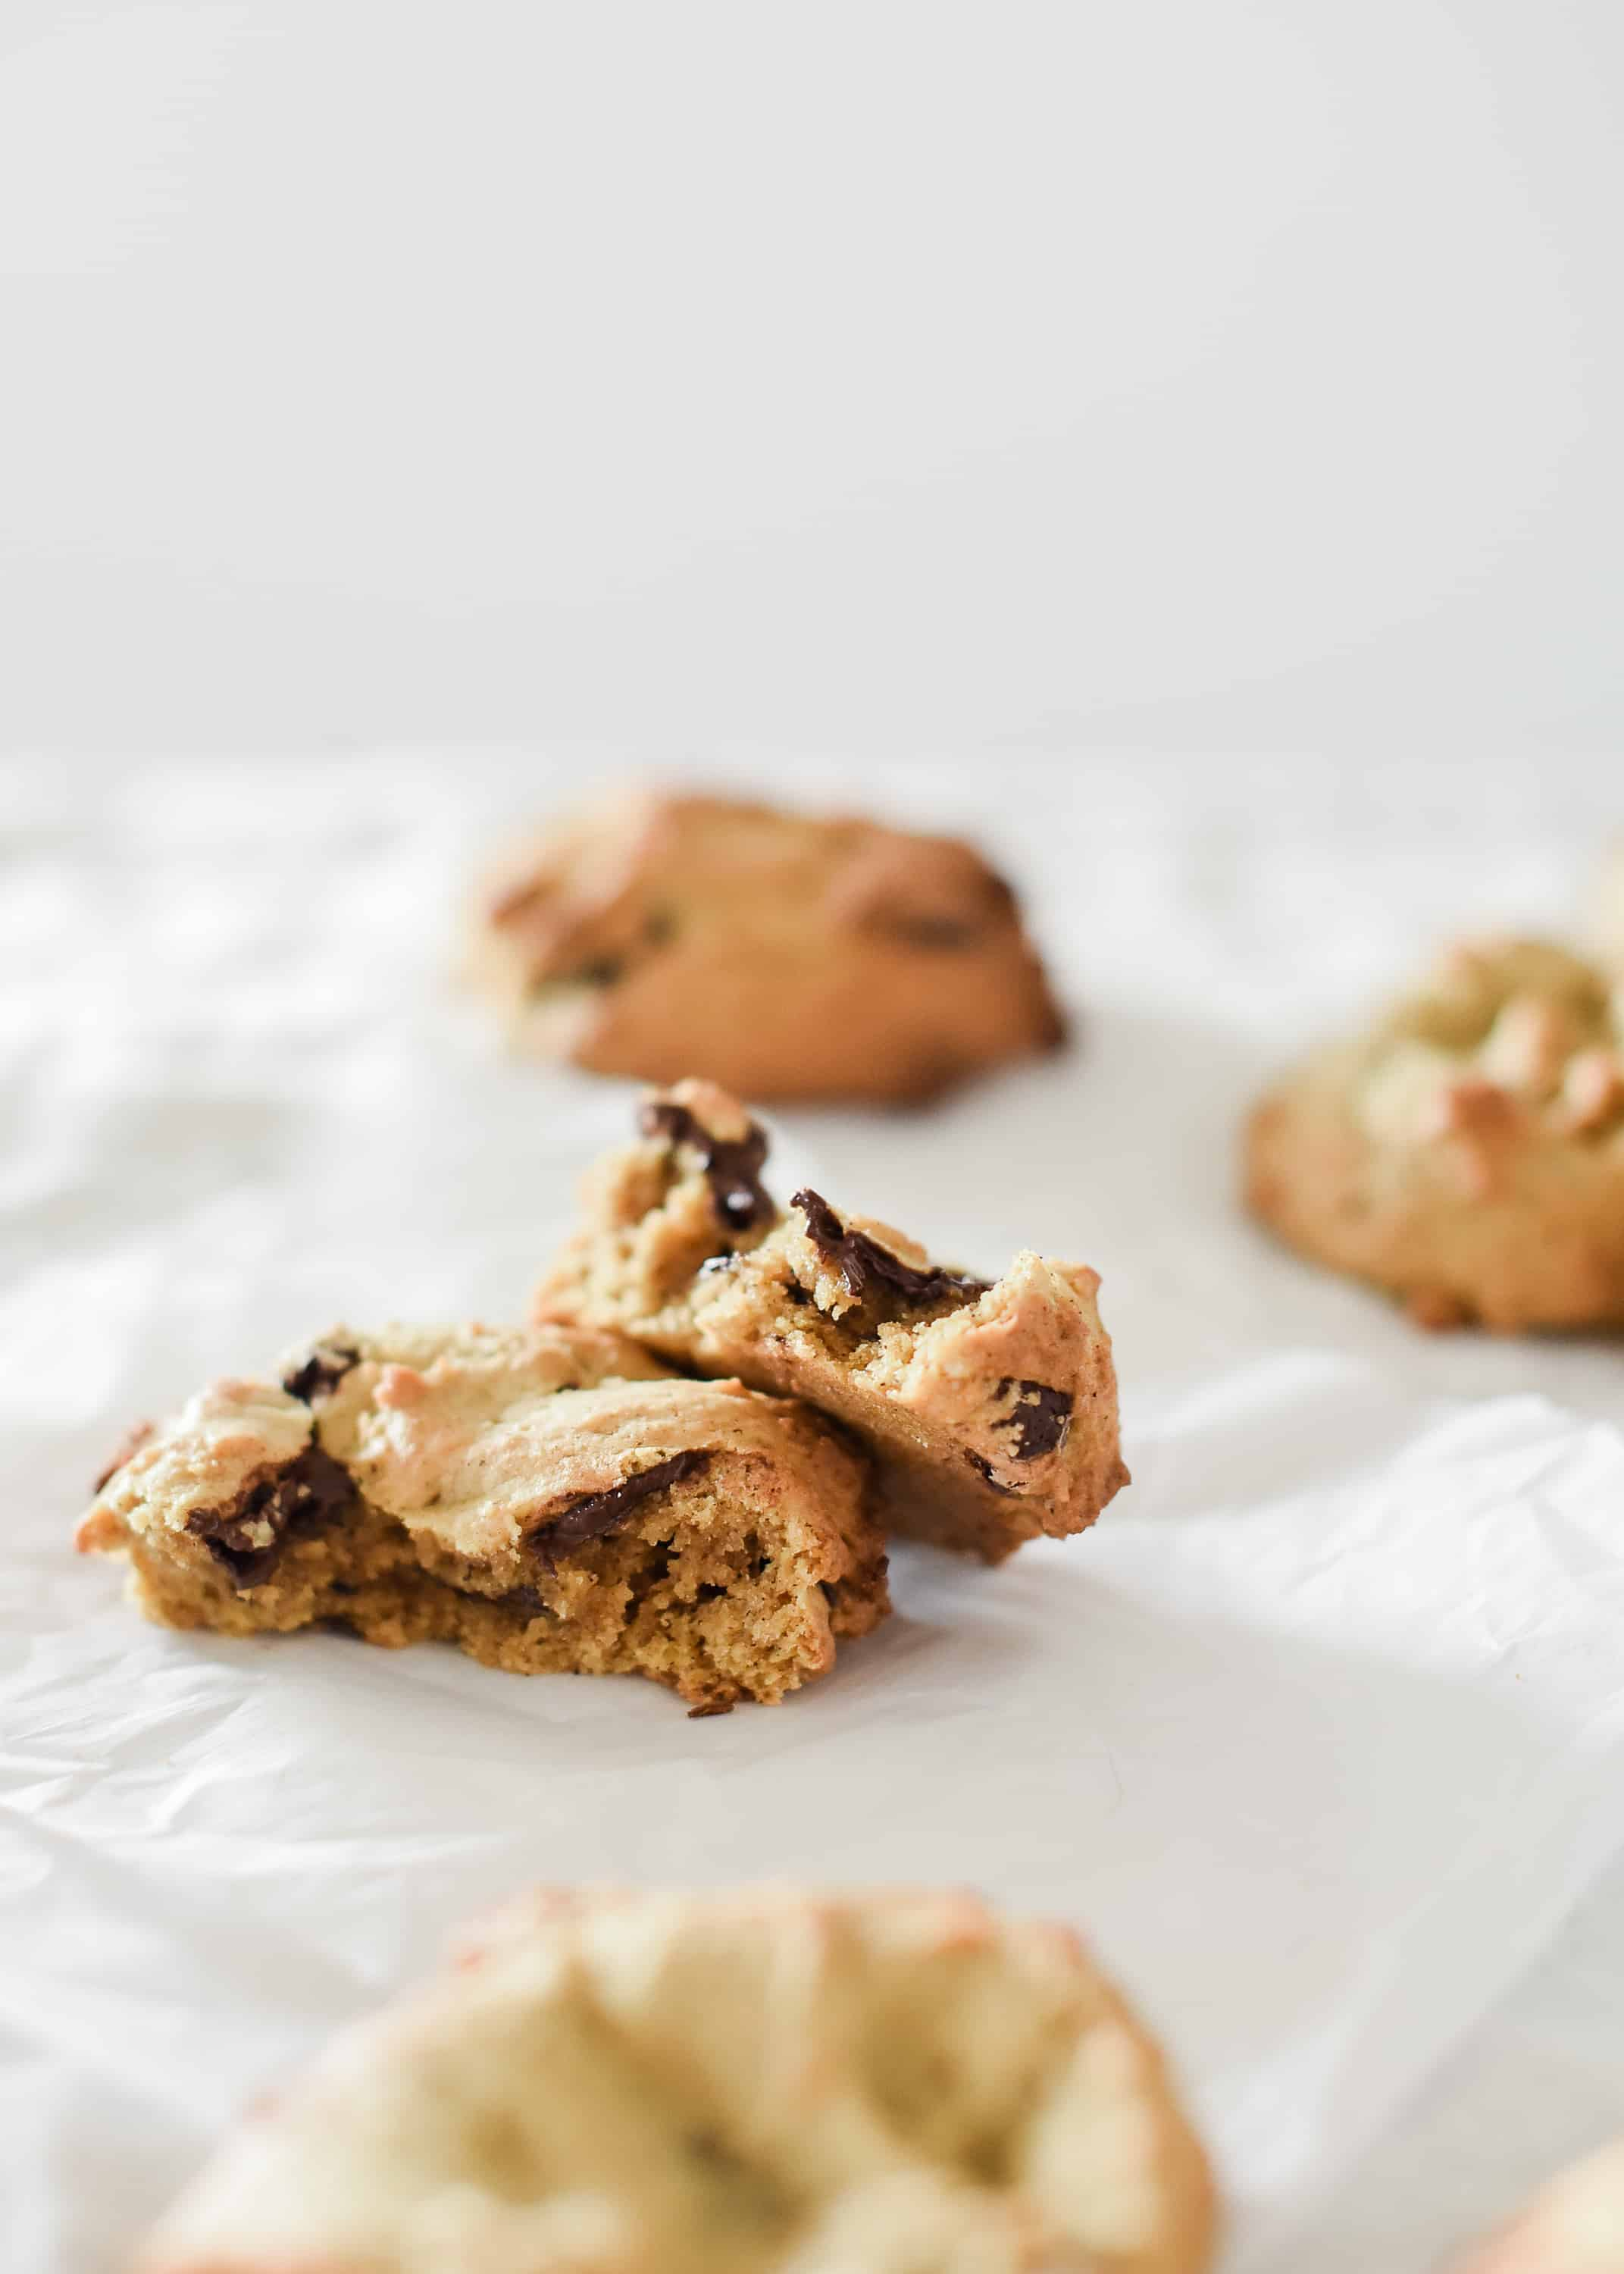 Of all the pumpkin recipes I've shared, these pumpkin chocolate chip cookies just might be my favorite. Baked to golden perfection, they are chewy, savory, sweet, and melt in your mouth good…you're going to love these!